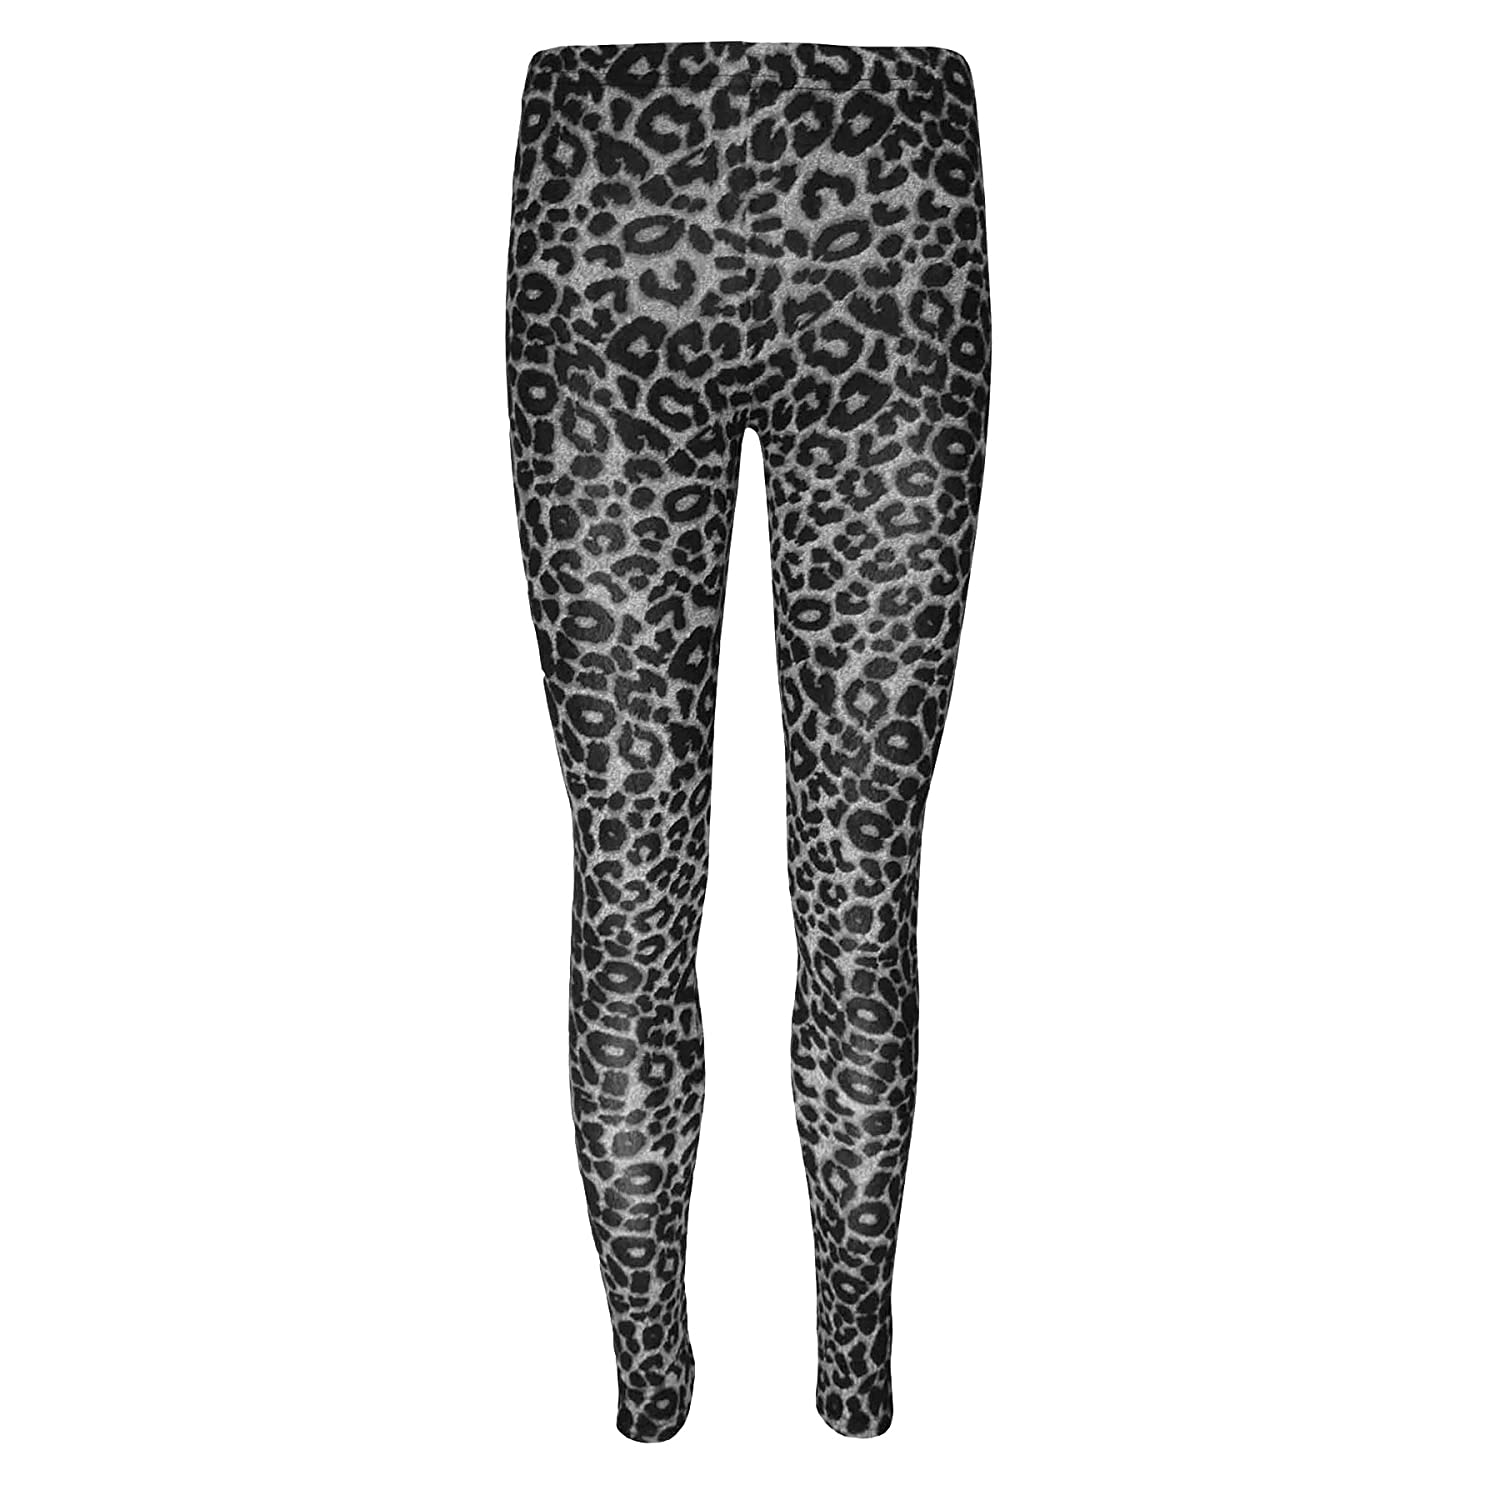 FAST TREND CLOTHING NEW GIRLS KIDS TWEEN STRETCH FULL LENGTH ANIMAL PRINT LEGGING PANT TIGHT AGE 7-13 YEARS